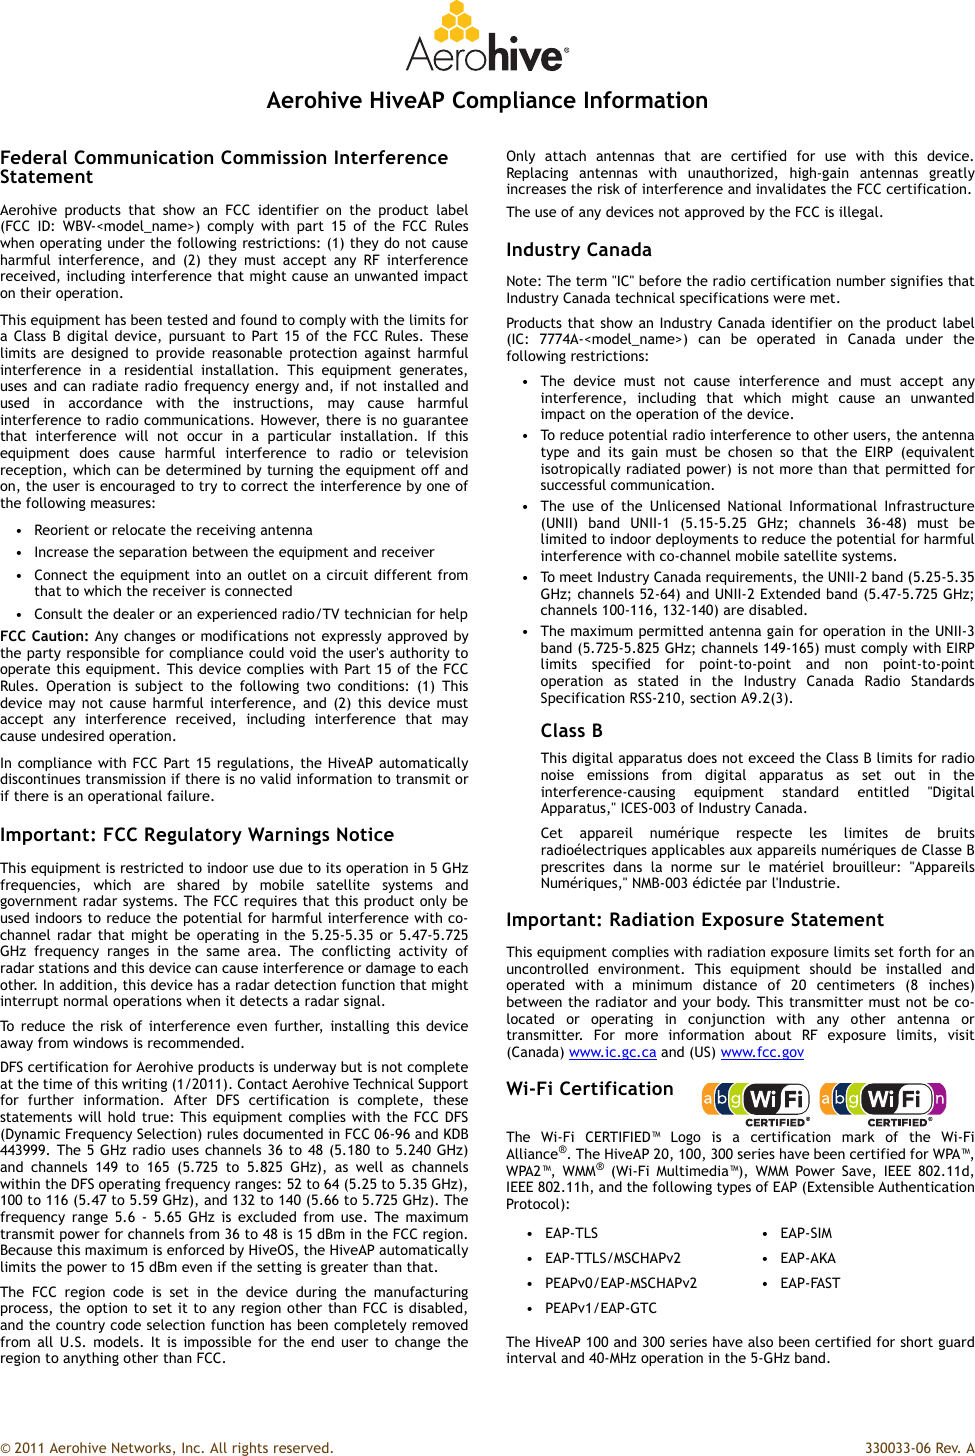 "© 2011 Aerohive Networks, Inc. All rights reserved.  330033-06 Rev. AAerohive HiveAP Compliance InformationFederal Communication Commission Interference StatementAerohive products that show an FCC identifier on the product label(FCC ID: WBV-<model_name>) comply with part 15 of the FCC Ruleswhen operating under the following restrictions: (1) they do not causeharmful interference, and (2) they must accept any RF interferencereceived, including interference that might cause an unwanted impacton their operation.This equipment has been tested and found to comply with the limits fora Class B digital device, pursuant to Part 15 of the FCC Rules. Theselimits are designed to provide reasonable protection against harmfulinterference in a residential installation. This equipment generates,uses and can radiate radio frequency energy and, if not installed andused in accordance with the instructions, may cause harmfulinterference to radio communications. However, there is no guaranteethat interference will not occur in a particular installation. If thisequipment does cause harmful interference to radio or televisionreception, which can be determined by turning the equipment off andon, the user is encouraged to try to correct the interference by one ofthe following measures:• Reorient or relocate the receiving antenna• Increase the separation between the equipment and receiver• Connect the equipment into an outlet on a circuit different fromthat to which the receiver is connected• Consult the dealer or an experienced radio/TV technician for helpFCC Caution: Any changes or modifications not expressly approved bythe party responsible for compliance could void the user's authority tooperate this equipment. This device complies with Part 15 of the FCCRules. Operation is subject to the following two conditions: (1) Thisdevice may not cause harmful interference, and (2) this device mustaccept any interference received, including interference that maycause undesired operation.In compliance with FCC Part 15 regulations, the HiveAP automaticallydiscontinues transmission if there is no valid information to transmit orif there is an operational failure.Important: FCC Regulatory Warnings NoticeThis equipment is restricted to indoor use due to its operation in 5 GHzfrequencies, which are shared by mobile satellite systems andgovernment radar systems. The FCC requires that this product only beused indoors to reduce the potential for harmful interference with co-channel radar that might be operating in the 5.25-5.35 or 5.47-5.725GHz frequency ranges in the same area. The conflicting activity ofradar stations and this device can cause interference or damage to eachother. In addition, this device has a radar detection function that mightinterrupt normal operations when it detects a radar signal.To reduce the risk of interference even further, installing this deviceaway from windows is recommended.DFS certification for Aerohive products is underway but is not completeat the time of this writing (1/2011). Contact Aerohive Technical Supportfor further information. After DFS certification is complete, thesestatements will hold true: This equipment complies with the FCC DFS(Dynamic Frequency Selection) rules documented in FCC 06-96 and KDB443999. The 5 GHz radio uses channels 36 to 48 (5.180 to 5.240 GHz)and channels 149 to 165 (5.725 to 5.825 GHz), as well as channelswithin the DFS operating frequency ranges: 52 to 64 (5.25 to 5.35 GHz),100 to 116 (5.47 to 5.59 GHz), and 132 to 140 (5.66 to 5.725 GHz). Thefrequency range 5.6 - 5.65 GHz is excluded from use. The maximumtransmit power for channels from 36 to 48 is 15 dBm in the FCC region.Because this maximum is enforced by HiveOS, the HiveAP automaticallylimits the power to 15 dBm even if the setting is greater than that.The FCC region code is set in the device during the manufacturingprocess, the option to set it to any region other than FCC is disabled,and the country code selection function has been completely removedfrom all U.S. models. It is impossible for the end user to change theregion to anything other than FCC.Only attach antennas that are certified for use with this device.Replacing antennas with unauthorized, high-gain antennas greatlyincreases the risk of interference and invalidates the FCC certification.The use of any devices not approved by the FCC is illegal.Industry CanadaNote: The term ""IC"" before the radio certification number signifies thatIndustry Canada technical specifications were met.Products that show an Industry Canada identifier on the product label(IC: 7774A-<model_name>) can be operated in Canada under thefollowing restrictions:• The device must not cause interference and must accept anyinterference, including that which might cause an unwantedimpact on the operation of the device.• To reduce potential radio interference to other users, the antennatype and its gain must be chosen so that the EIRP (equivalentisotropically radiated power) is not more than that permitted forsuccessful communication.• The use of the Unlicensed National Informational Infrastructure(UNII) band UNII-1 (5.15-5.25 GHz; channels 36-48) must belimited to indoor deployments to reduce the potential for harmfulinterference with co-channel mobile satellite systems.• To meet Industry Canada requirements, the UNII-2 band (5.25-5.35GHz; channels 52-64) and UNII-2 Extended band (5.47-5.725 GHz;channels 100-116, 132-140) are disabled.• The maximum permitted antenna gain for operation in the UNII-3band (5.725-5.825 GHz; channels 149-165) must comply with EIRPlimits specified for point-to-point and non point-to-pointoperation as stated in the Industry Canada Radio StandardsSpecification RSS-210, section A9.2(3).Class BThis digital apparatus does not exceed the Class B limits for radionoise emissions from digital apparatus as set out in theinterference-causing equipment standard entitled ""DigitalApparatus,"" ICES-003 of Industry Canada.Cet appareil numérique respecte les limites de bruitsradioélectriques applicables aux appareils numériques de Classe Bprescrites dans la norme sur le matériel brouilleur: ""AppareilsNumériques,"" NMB-003 édictée par l'Industrie.Important: Radiation Exposure StatementThis equipment complies with radiation exposure limits set forth for anuncontrolled environment. This equipment should be installed andoperated with a minimum distance of 20 centimeters (8 inches)between the radiator and your body. This transmitter must not be co-located or operating in conjunction with any other antenna ortransmitter. For more information about RF exposure limits, visit(Canada) www.ic.gc.ca and (US) www.fcc.govWi-Fi CertificationThe Wi-Fi CERTIFIED™ Logo is a certification mark of the Wi-FiAlliance®. The HiveAP 20, 100, 300 series have been certified for WPA™,WPA2™, WMM® (Wi-Fi Multimedia™), WMM Power Save, IEEE 802.11d,IEEE 802.11h, and the following types of EAP (Extensible AuthenticationProtocol):The HiveAP 100 and 300 series have also been certified for short guardinterval and 40-MHz operation in the 5-GHz band.•EAP-TLS •EAP-SIM•EAP-TTLS/MSCHAPv2 •EAP-AKA• PEAPv0/EAP-MSCHAPv2 • EAP-FAST• PEAPv1/EAP-GTC"